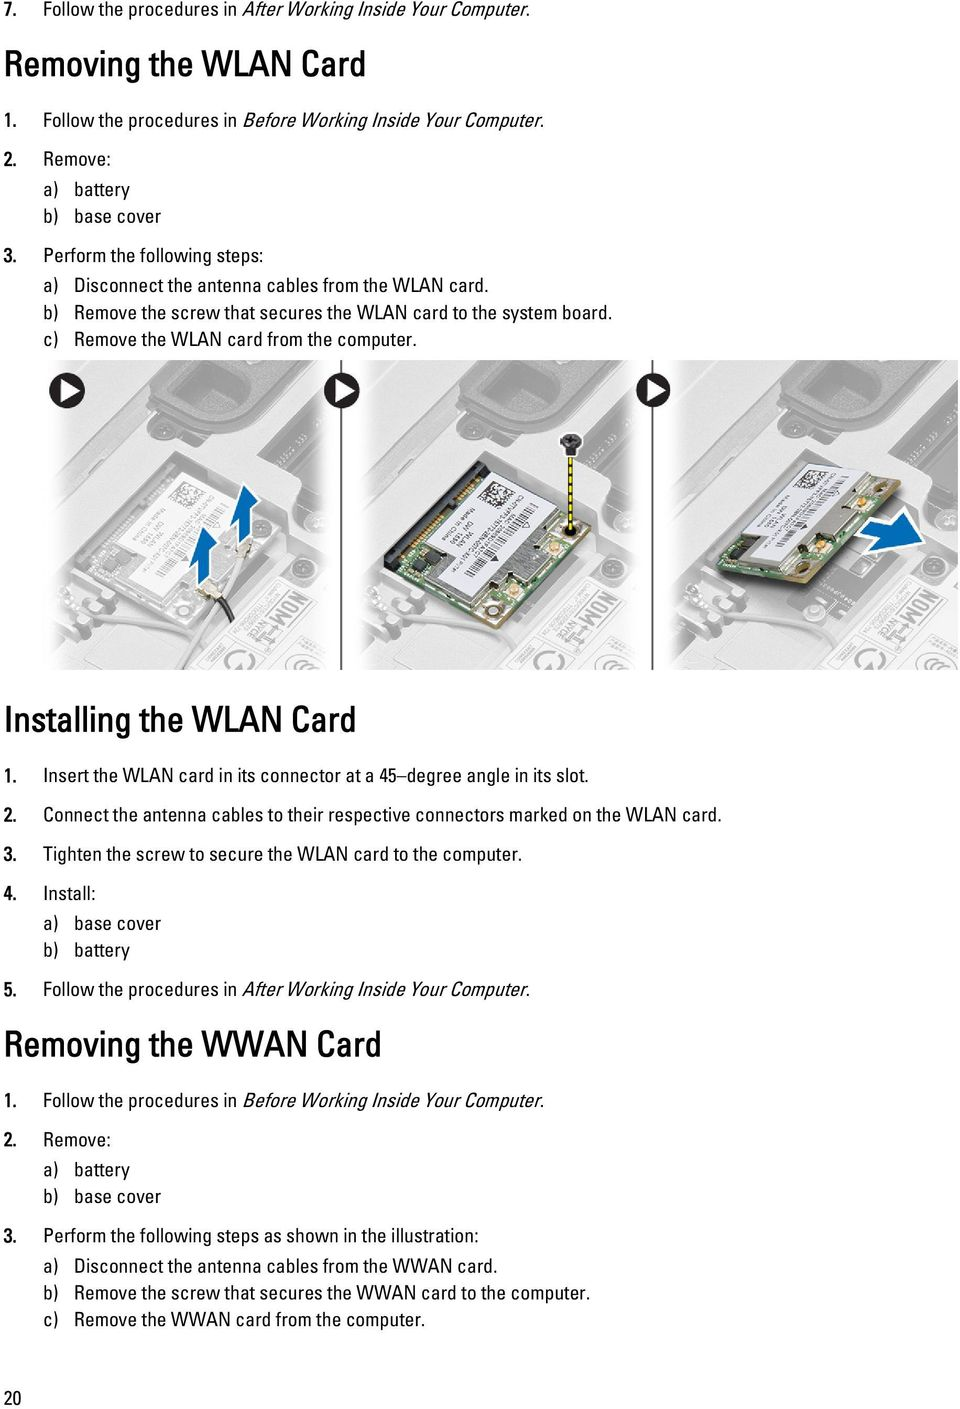 Installing the WLAN Card 1. Insert the WLAN card in its connector at a 45 degree angle in its slot. 2. Connect the antenna cables to their respective connectors marked on the WLAN card. 3.